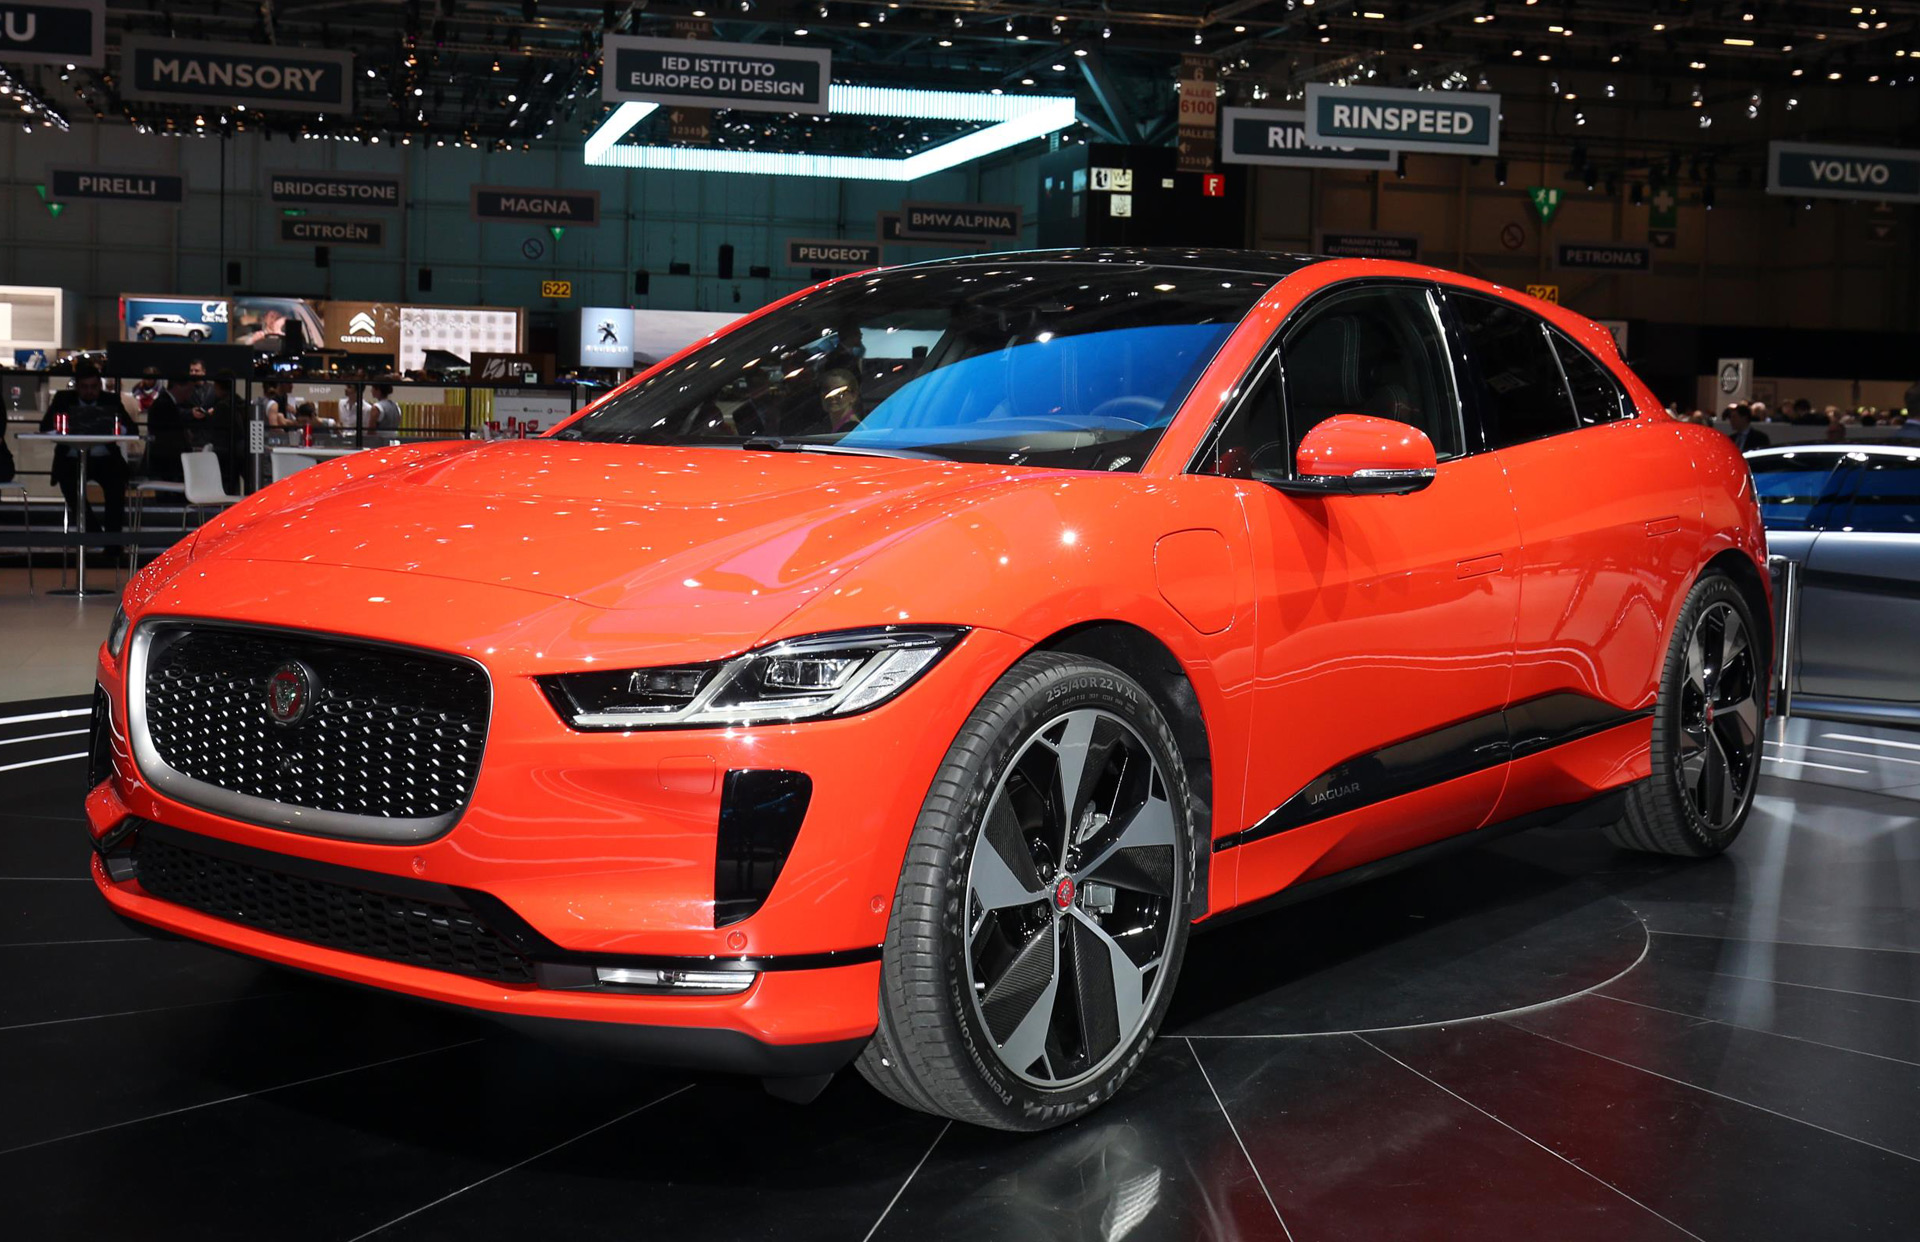 2019 jaguar i pace brief first drive of all electric luxury crossover. Black Bedroom Furniture Sets. Home Design Ideas